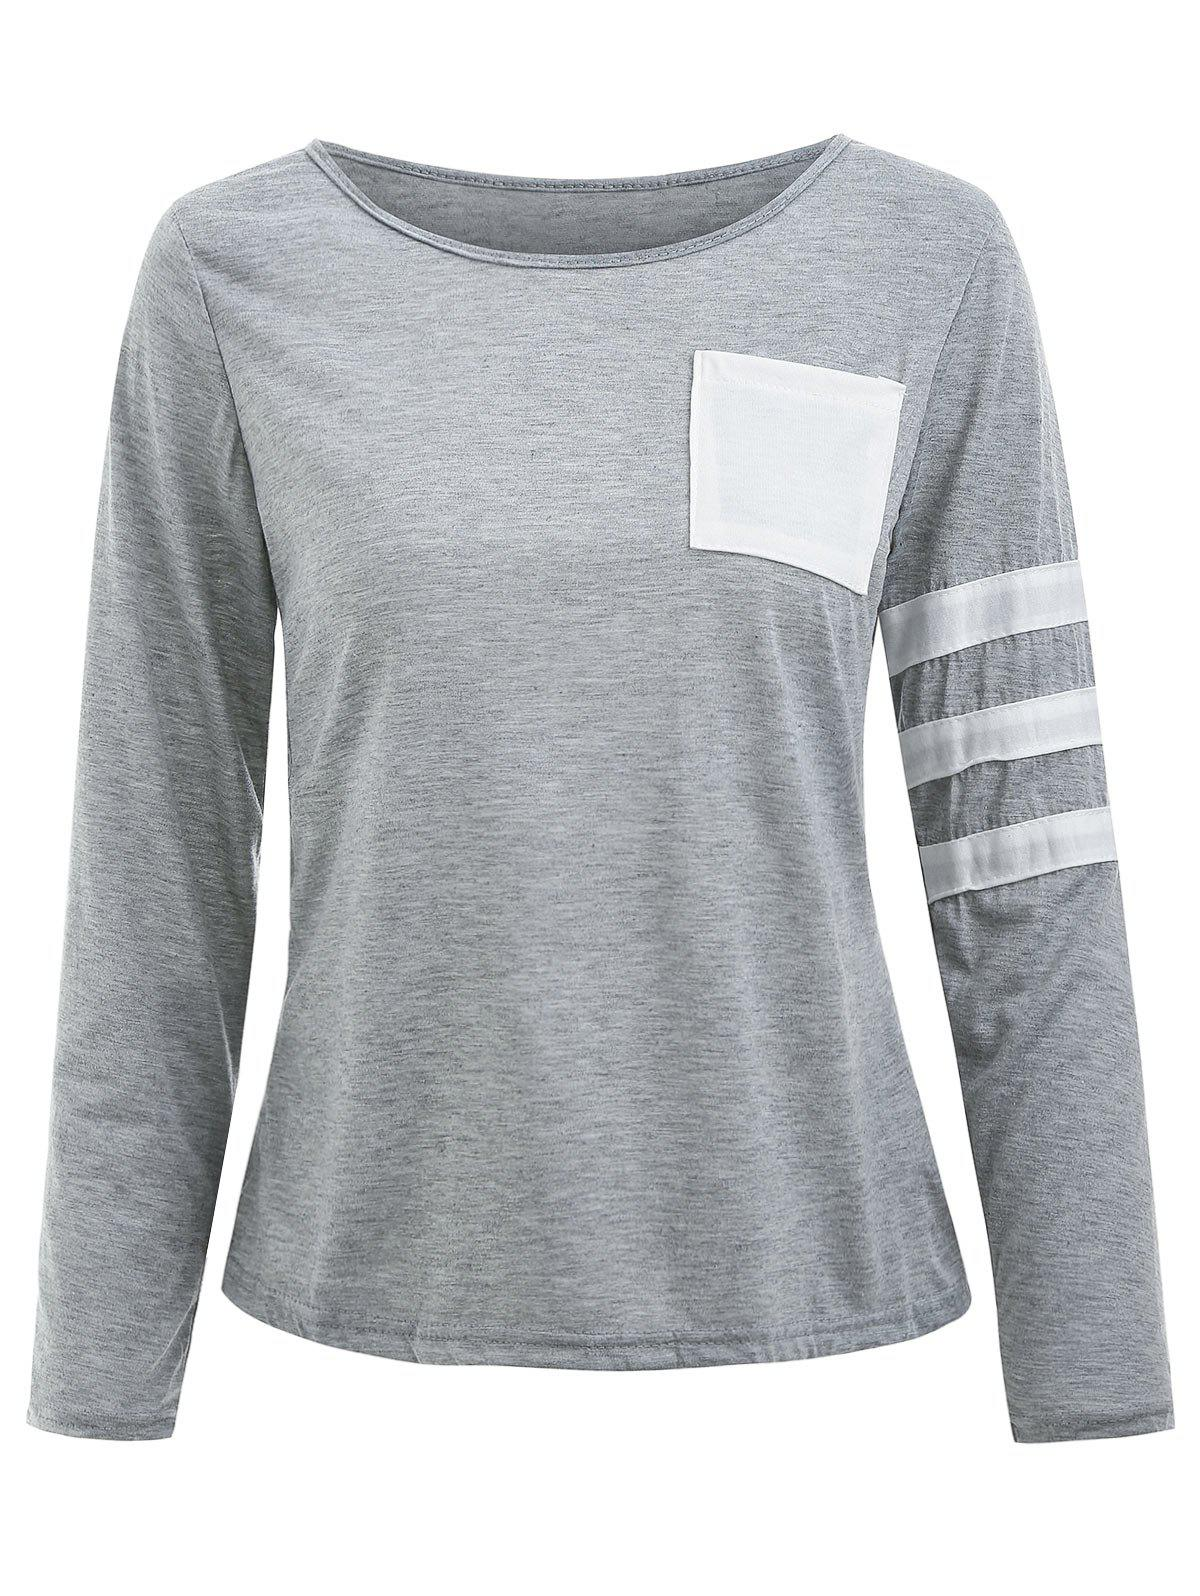 Pocketed Color Block Striped Sleeve T-shirt - GRAY M